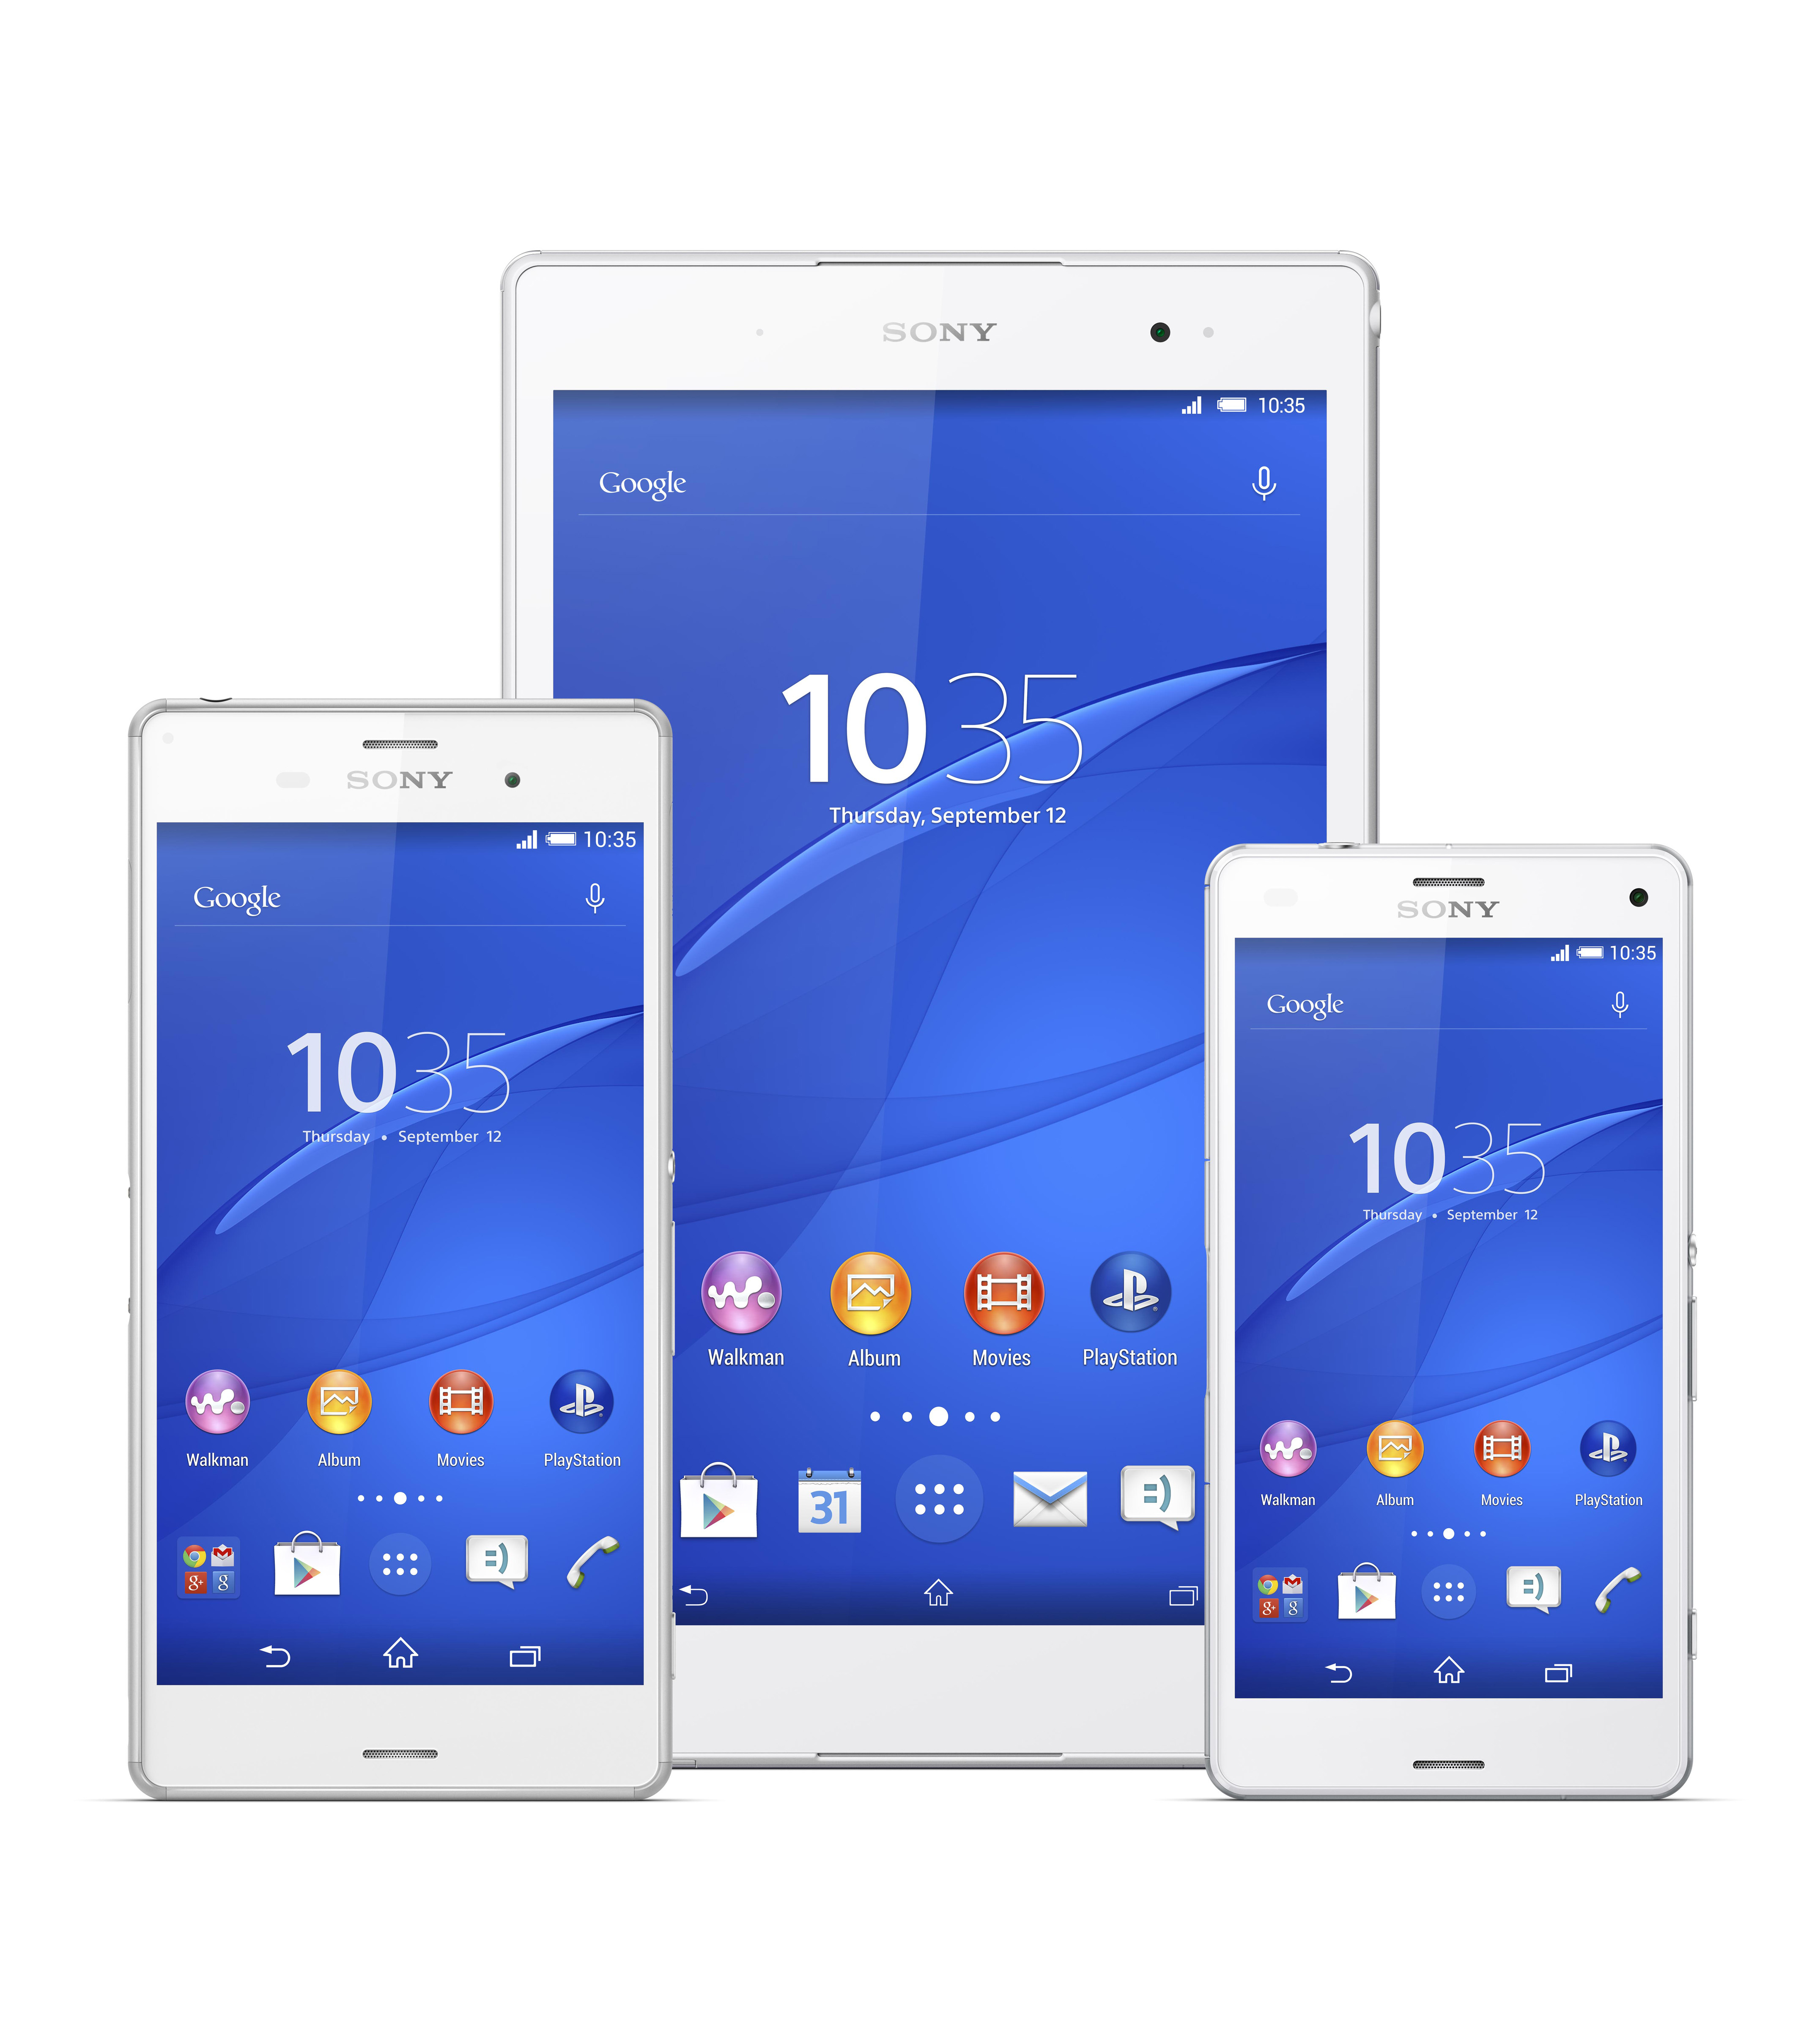 Sony might release upcoming Xperia Z4 in phablet and compact versions